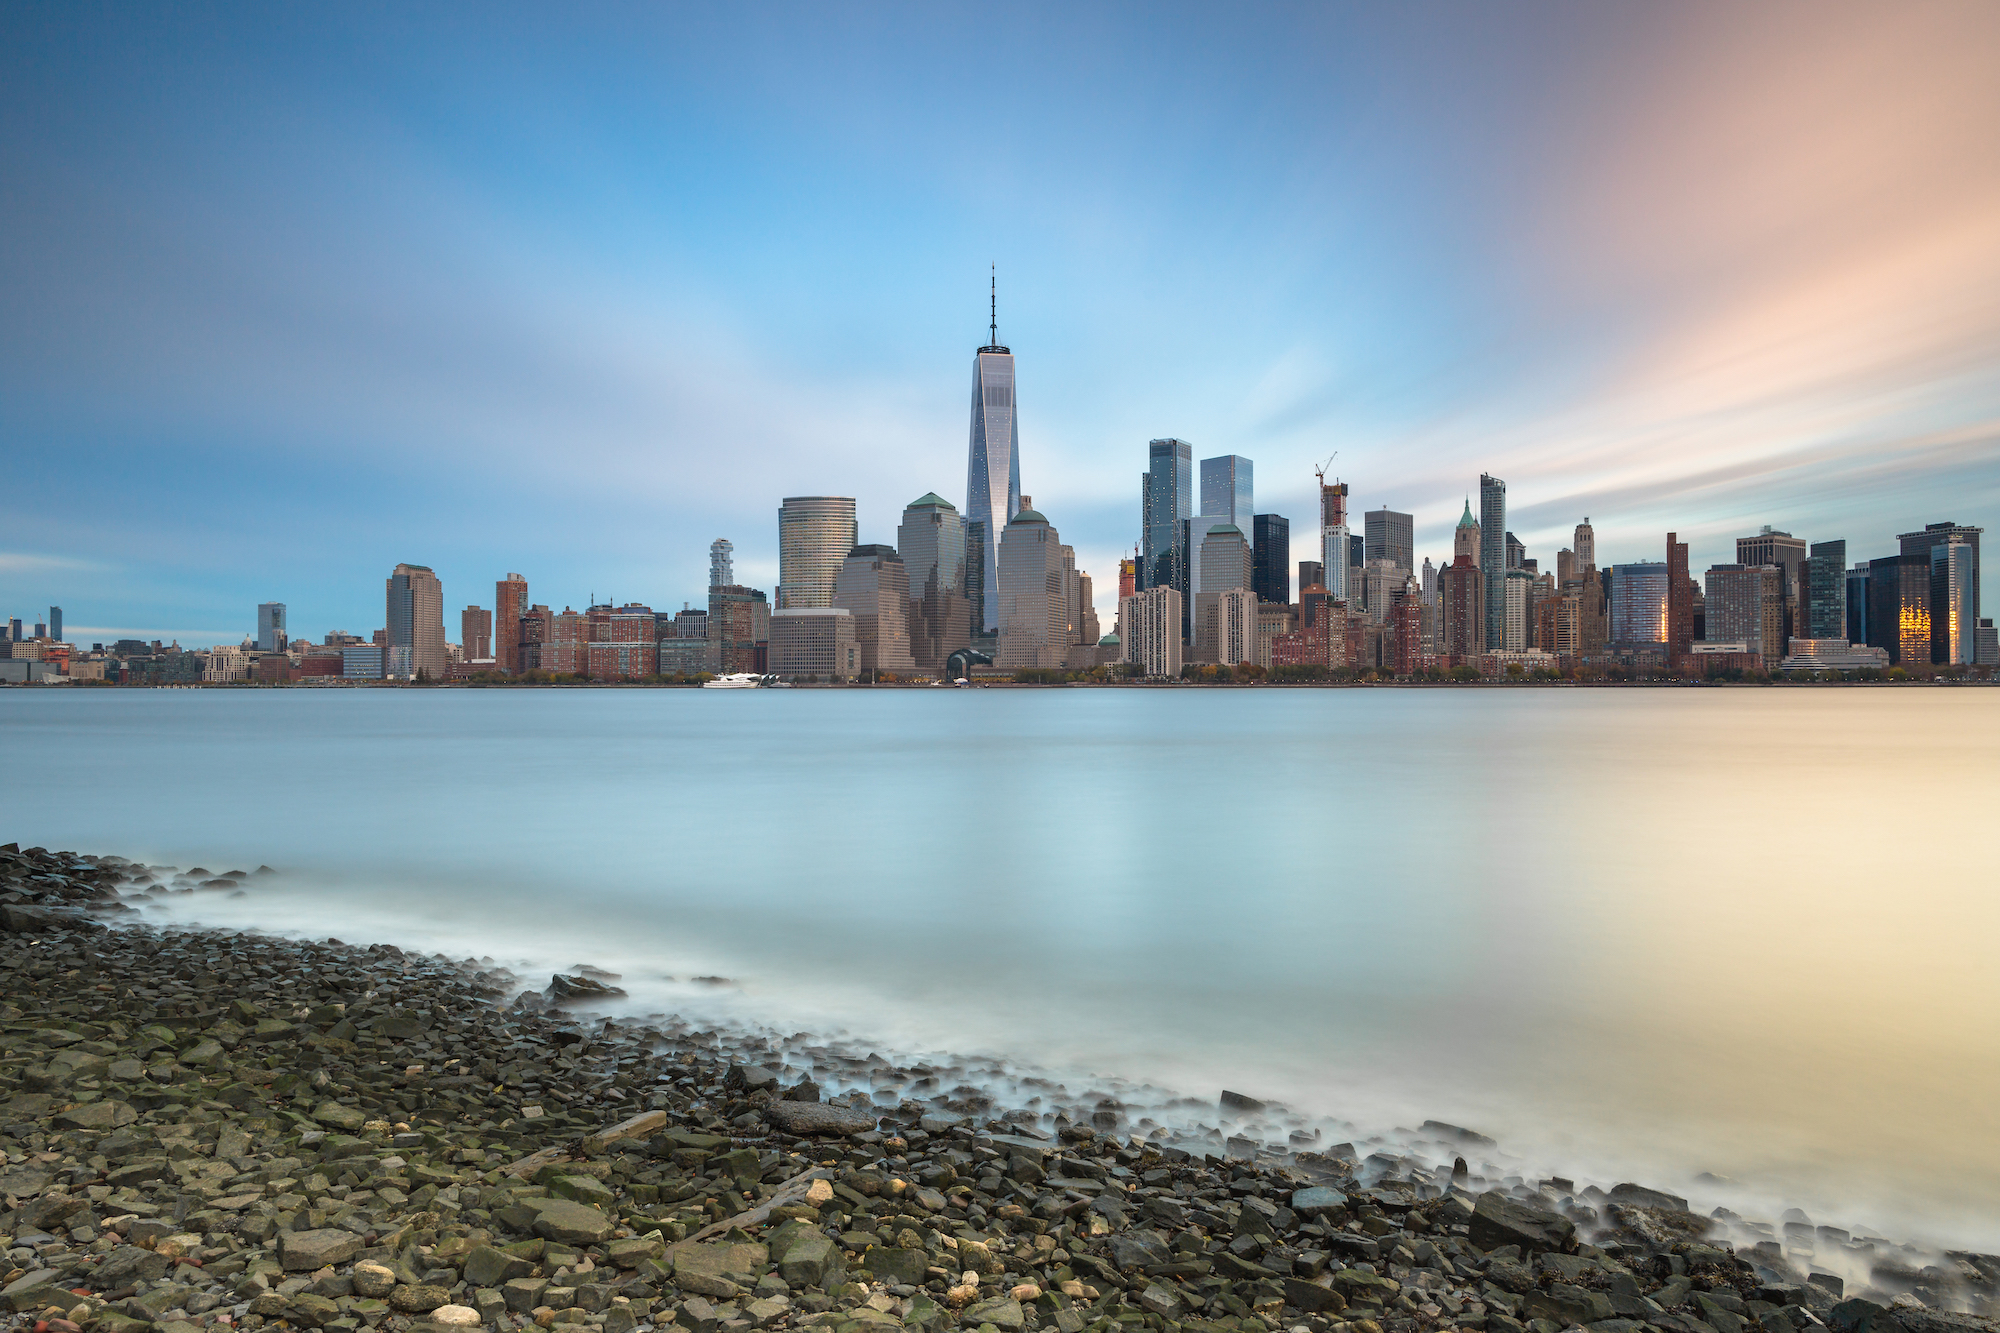 View on Financial District from Hudson river beach example image 1